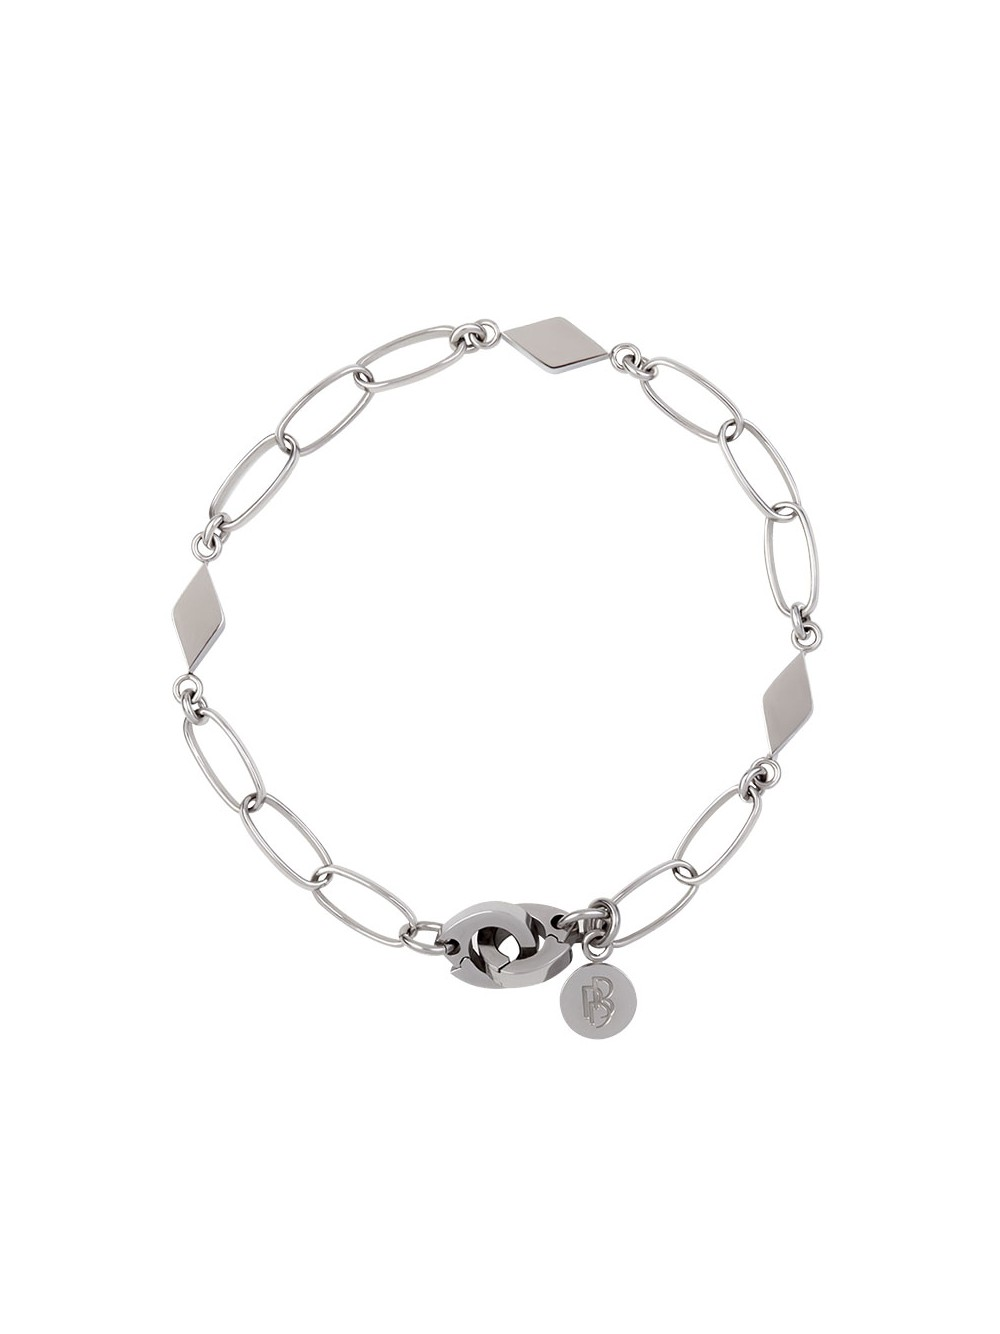 BRACELET - LUCY WITH DIAMONDS